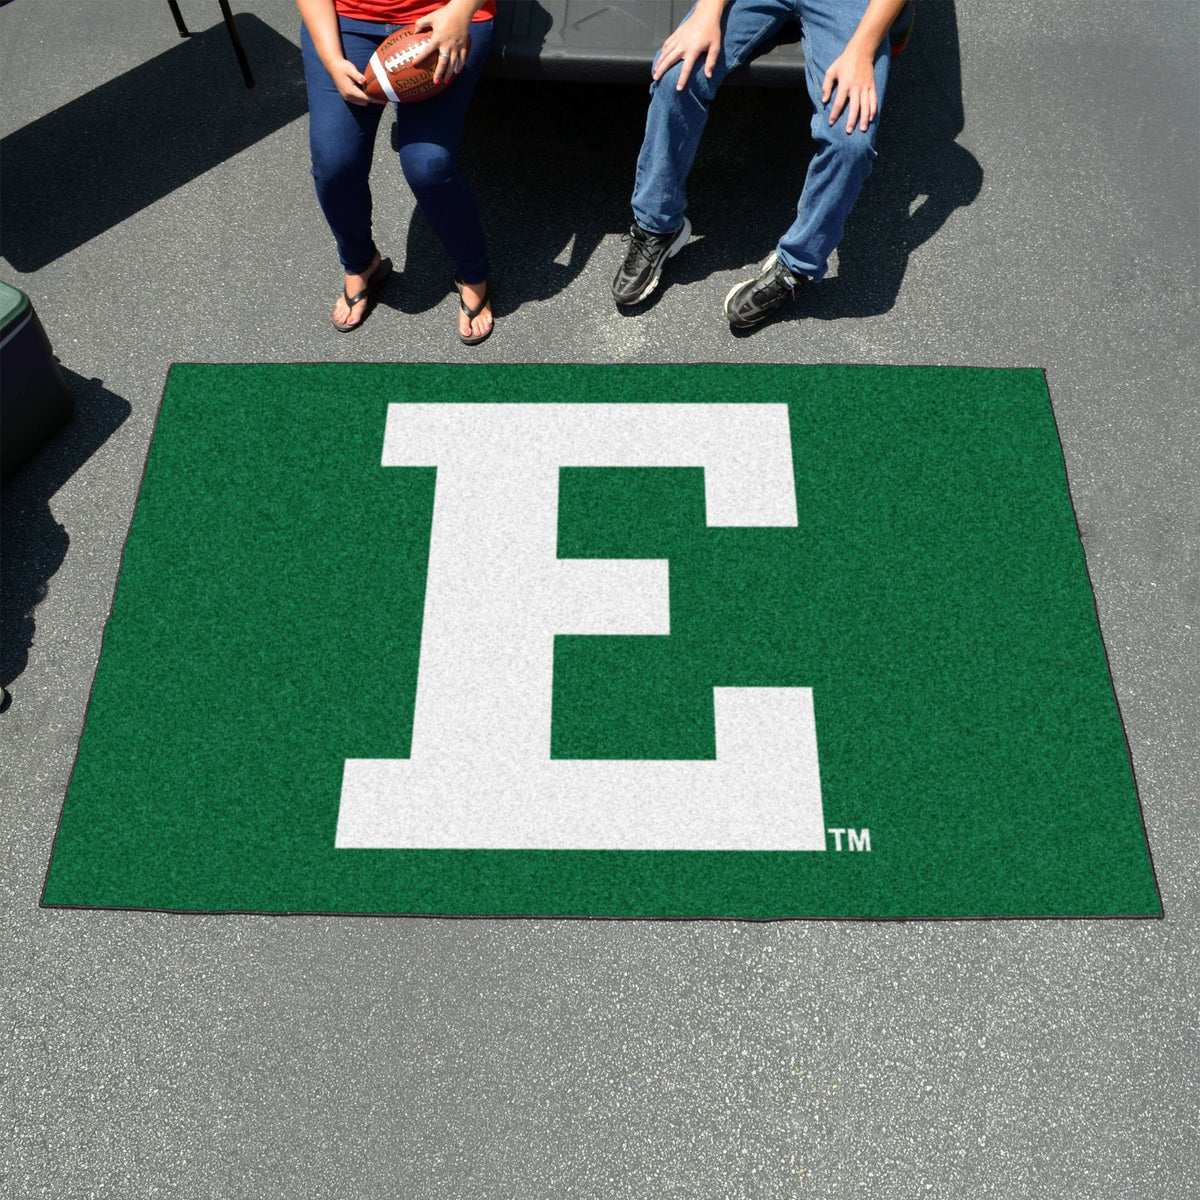 Collegiate - Ulti-Mat: A - L Collegiate Mats, Rectangular Mats, Ulti-Mat, Collegiate, Home Fan Mats Eastern Michigan